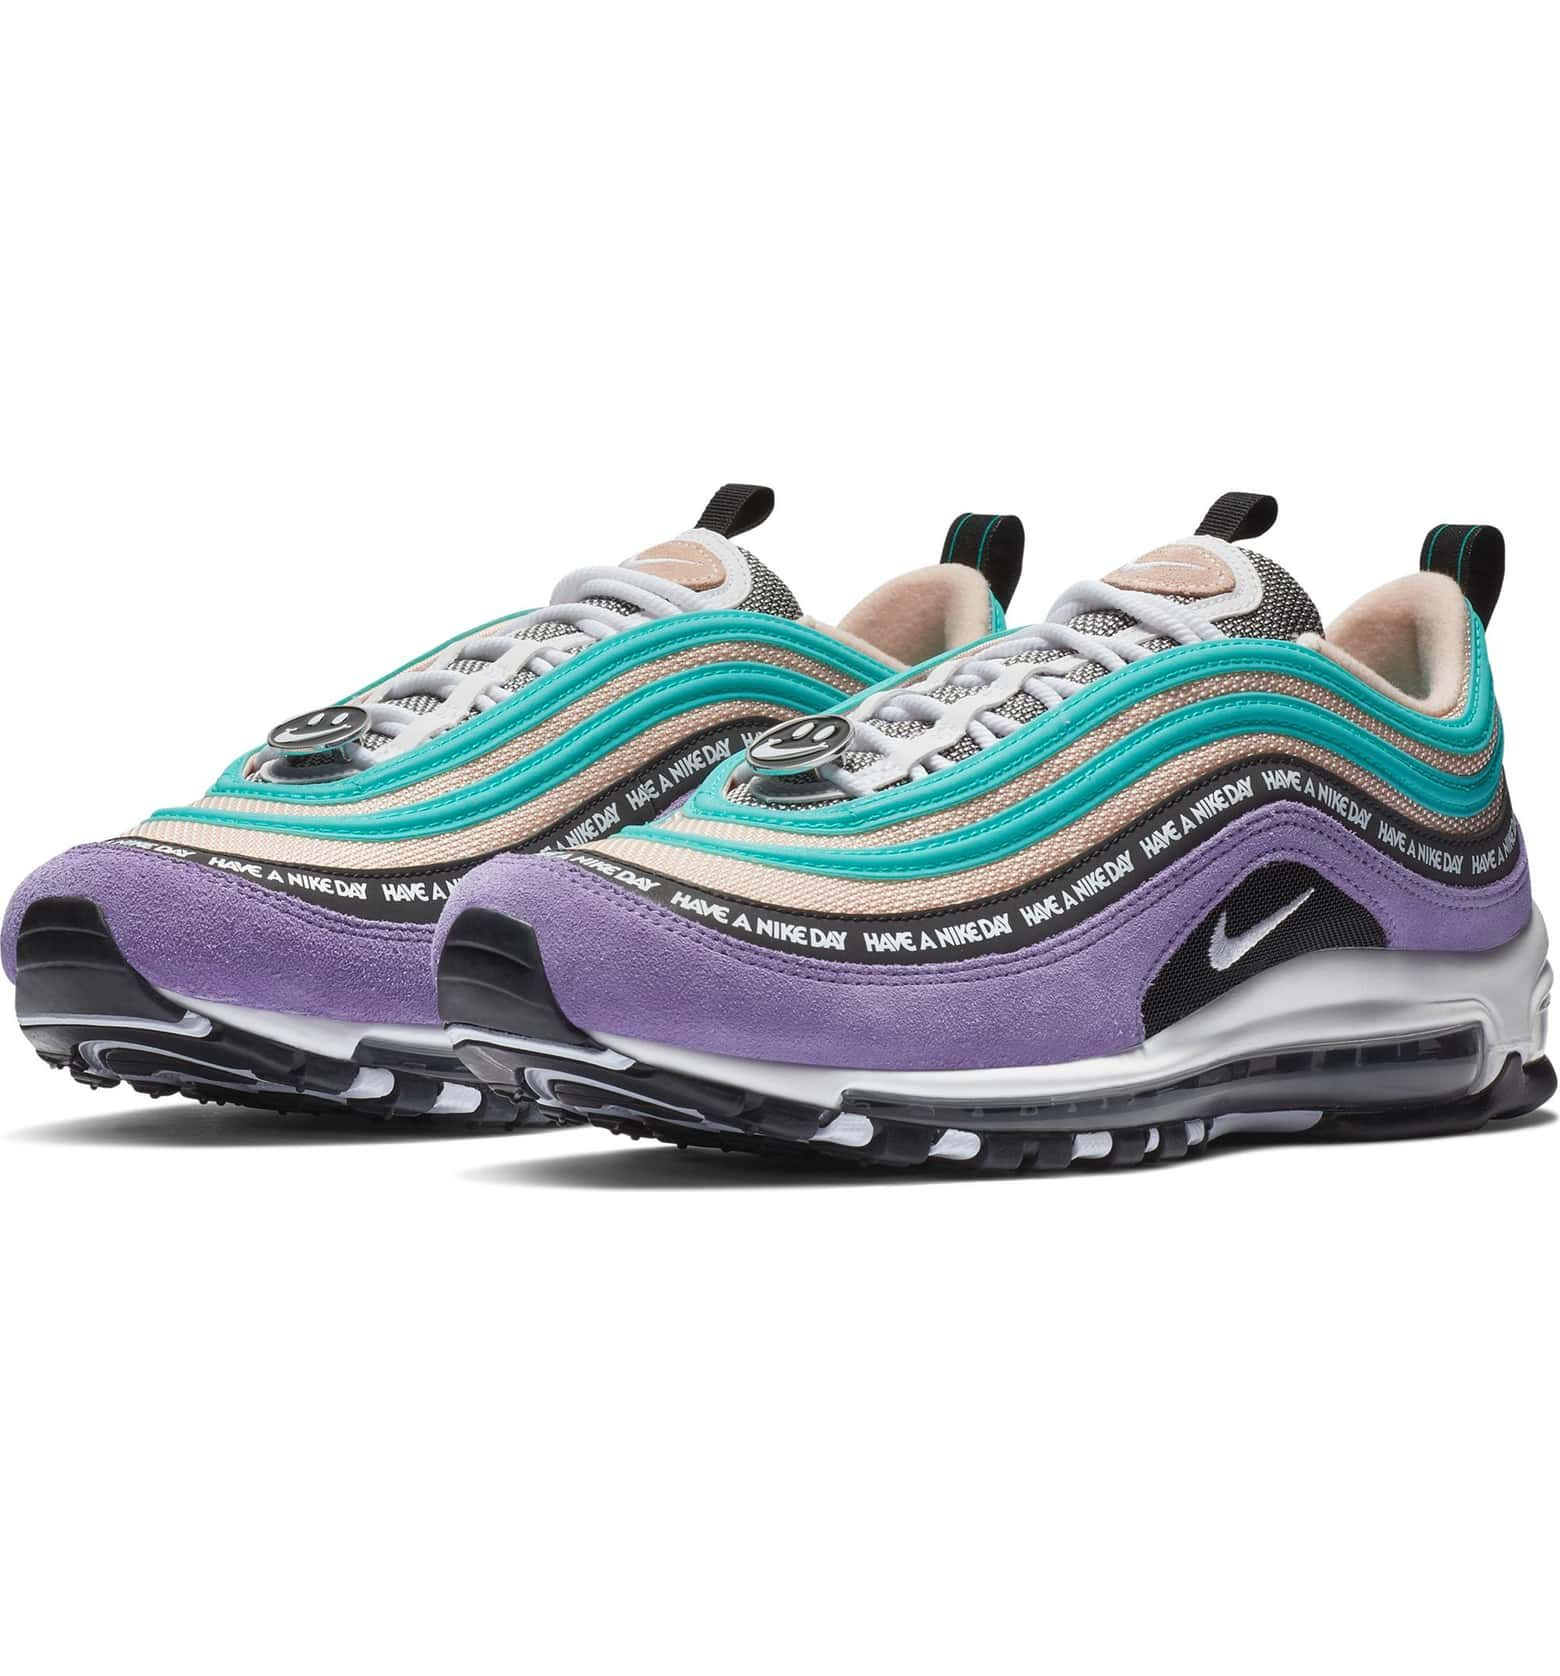 Nike Air Max 97 Have a Nike Day Sneaker